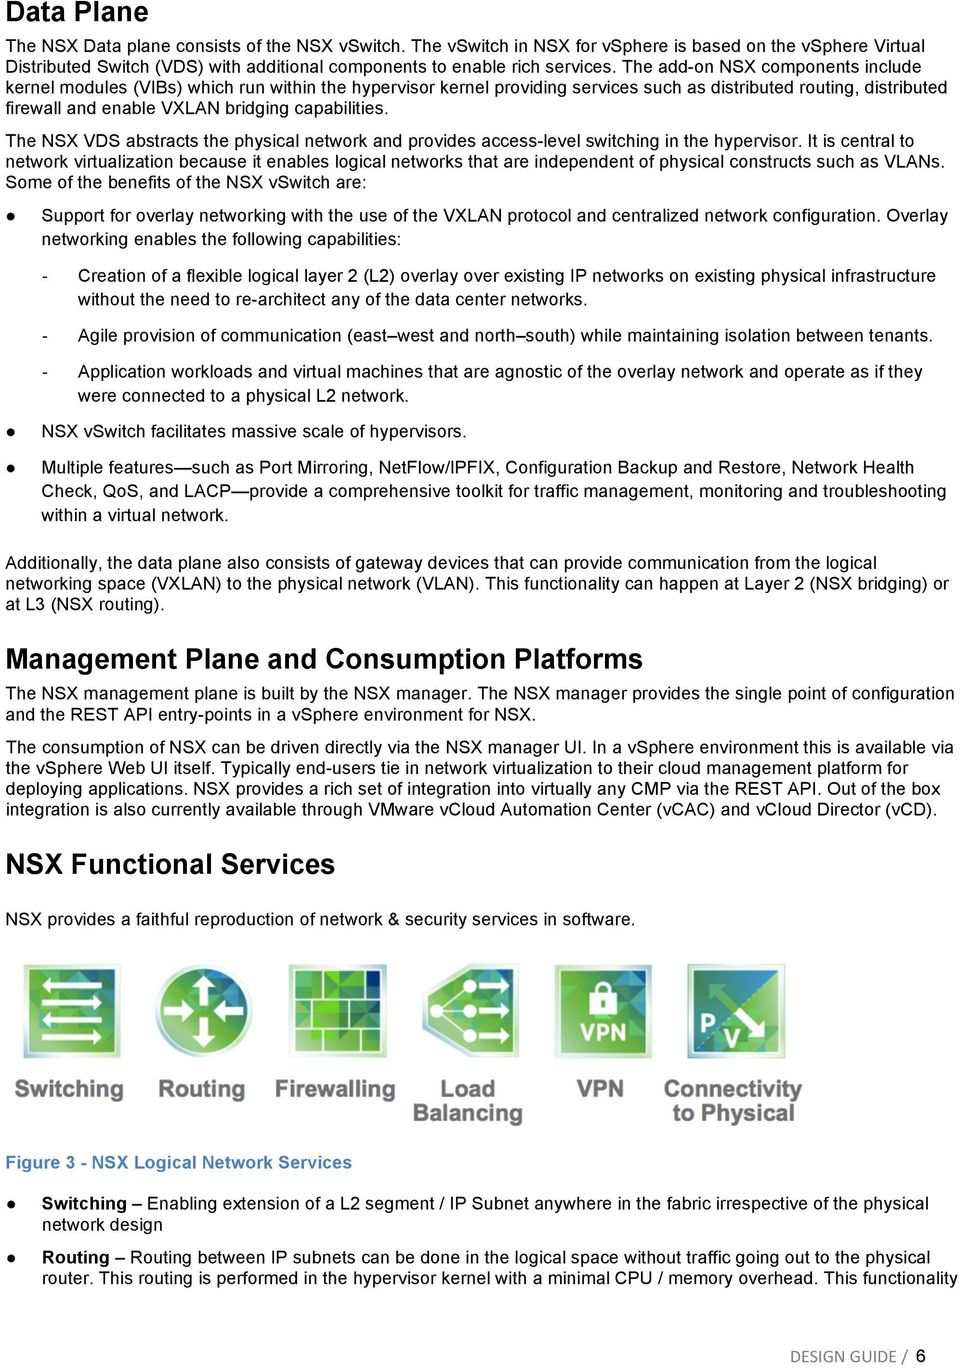 capabilities. The NSX VDS abstracts the physical network and provides access-level switching in the hypervisor.